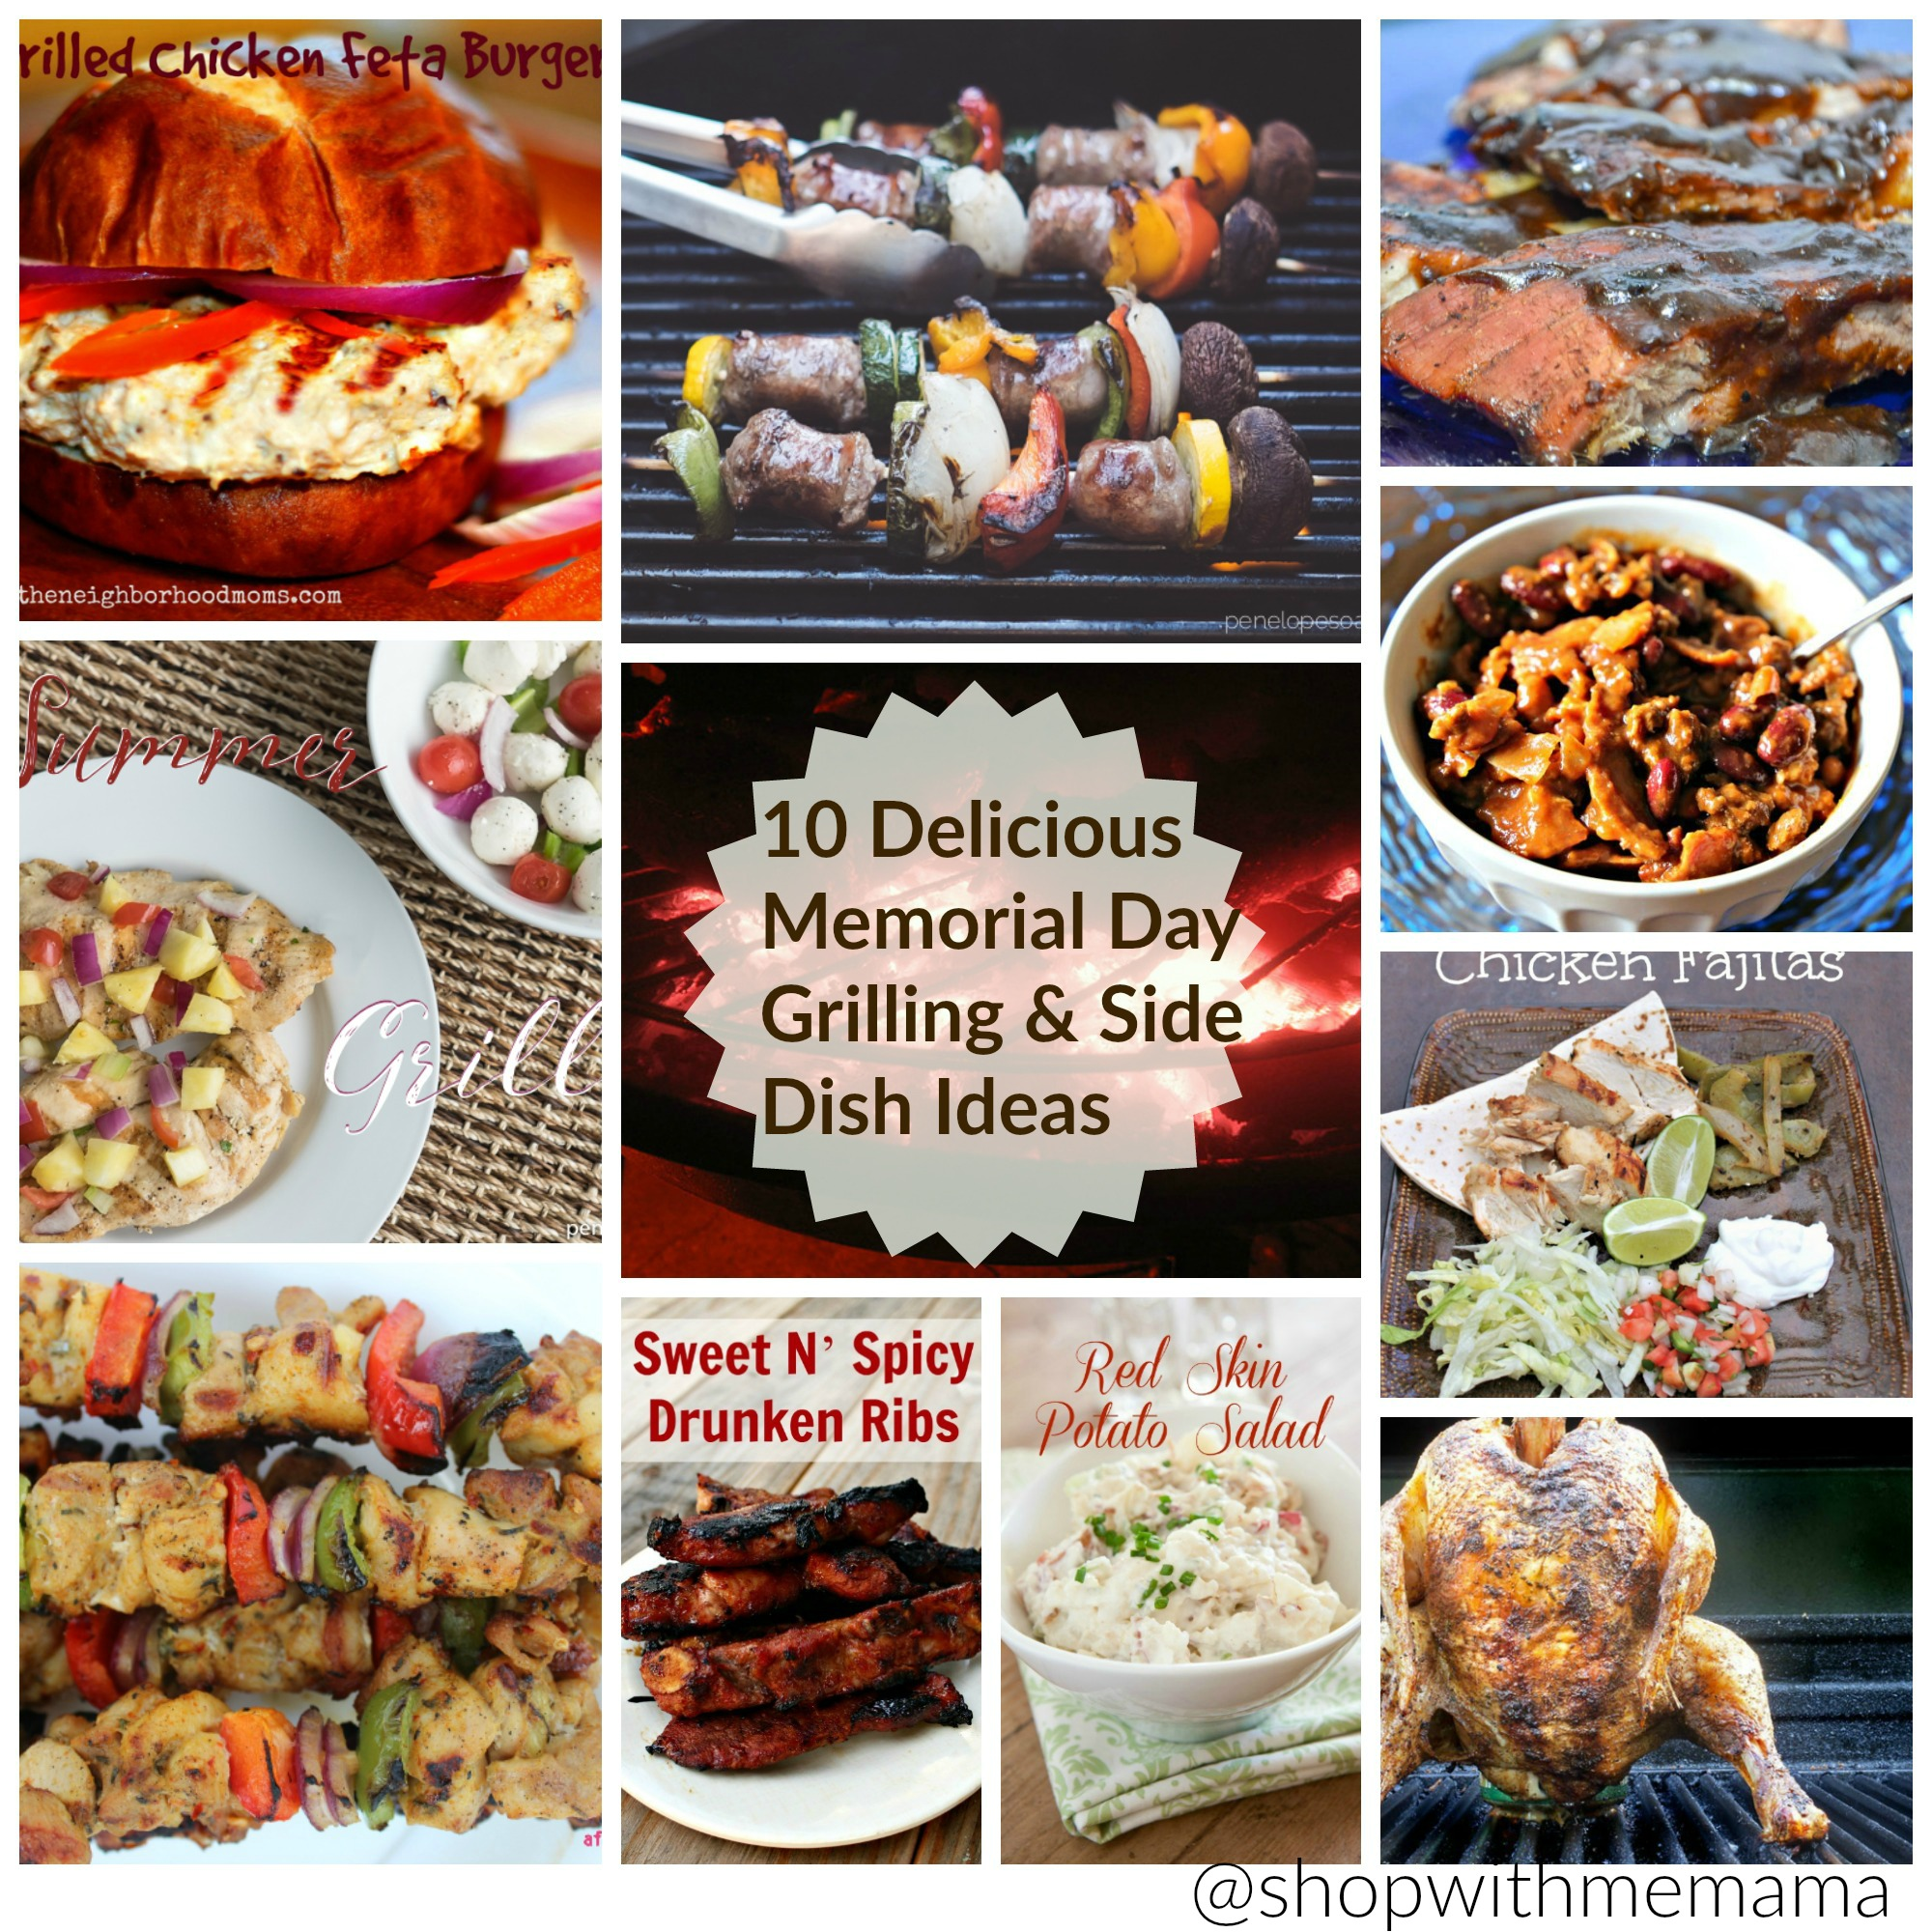 Sides On The Grill: 10 Delicious Memorial Day Grilling & Side Dish Ideas